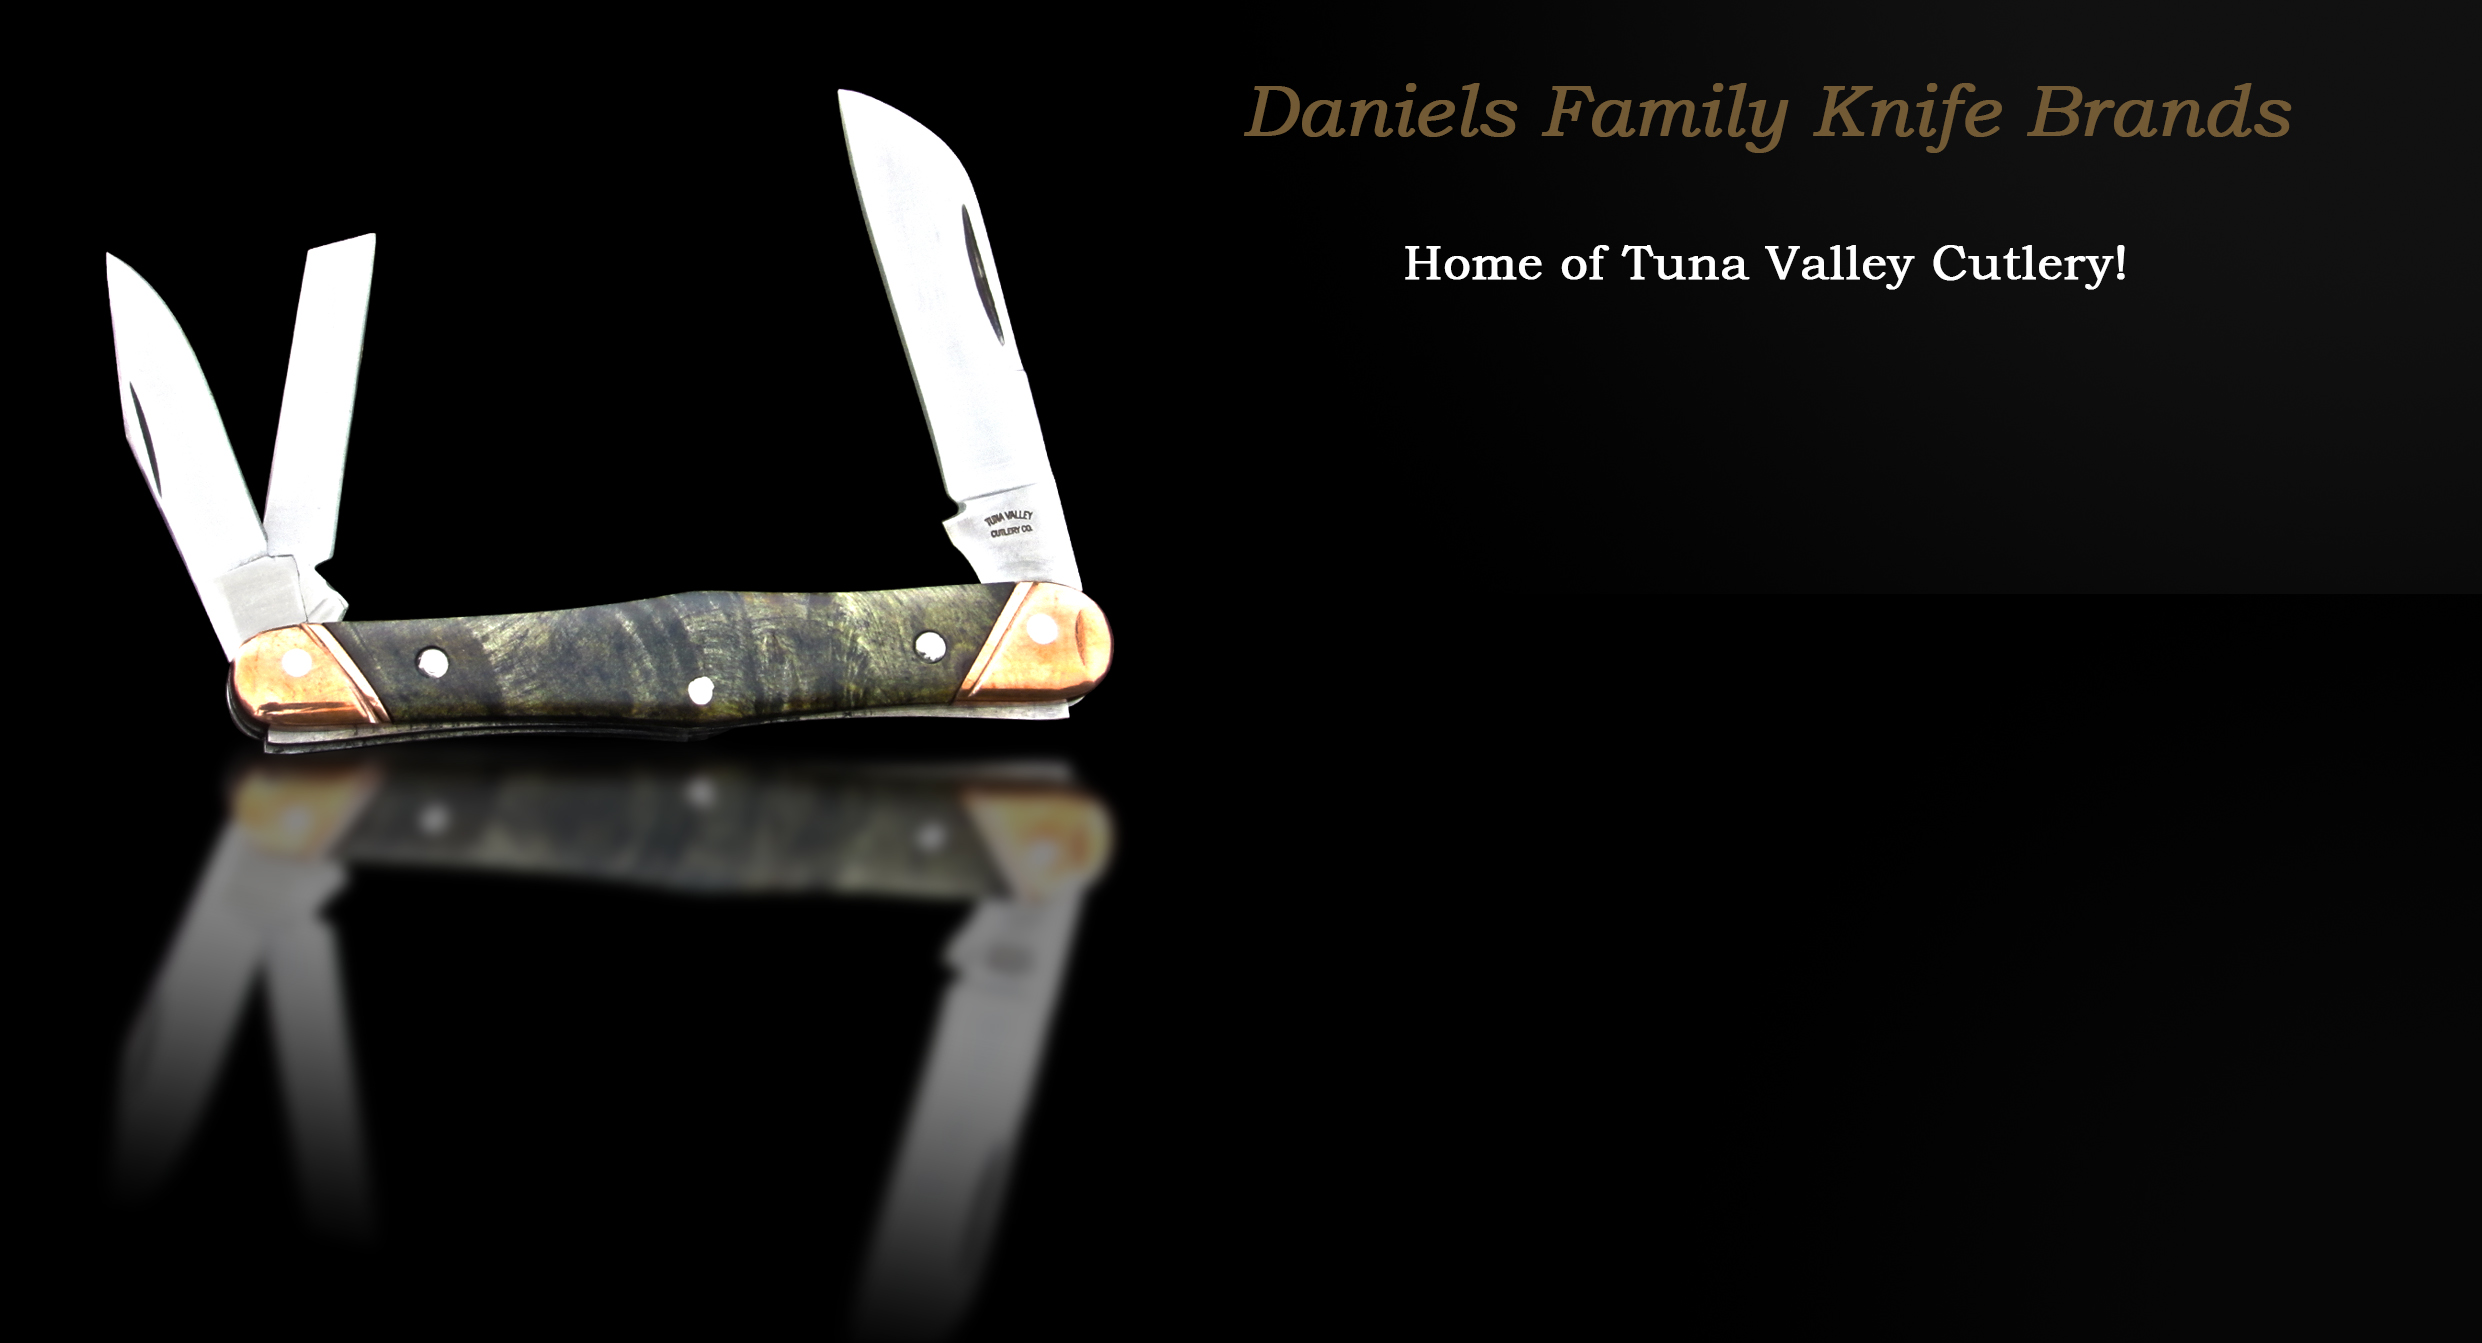 Tuna Valley Cutlery glass ad